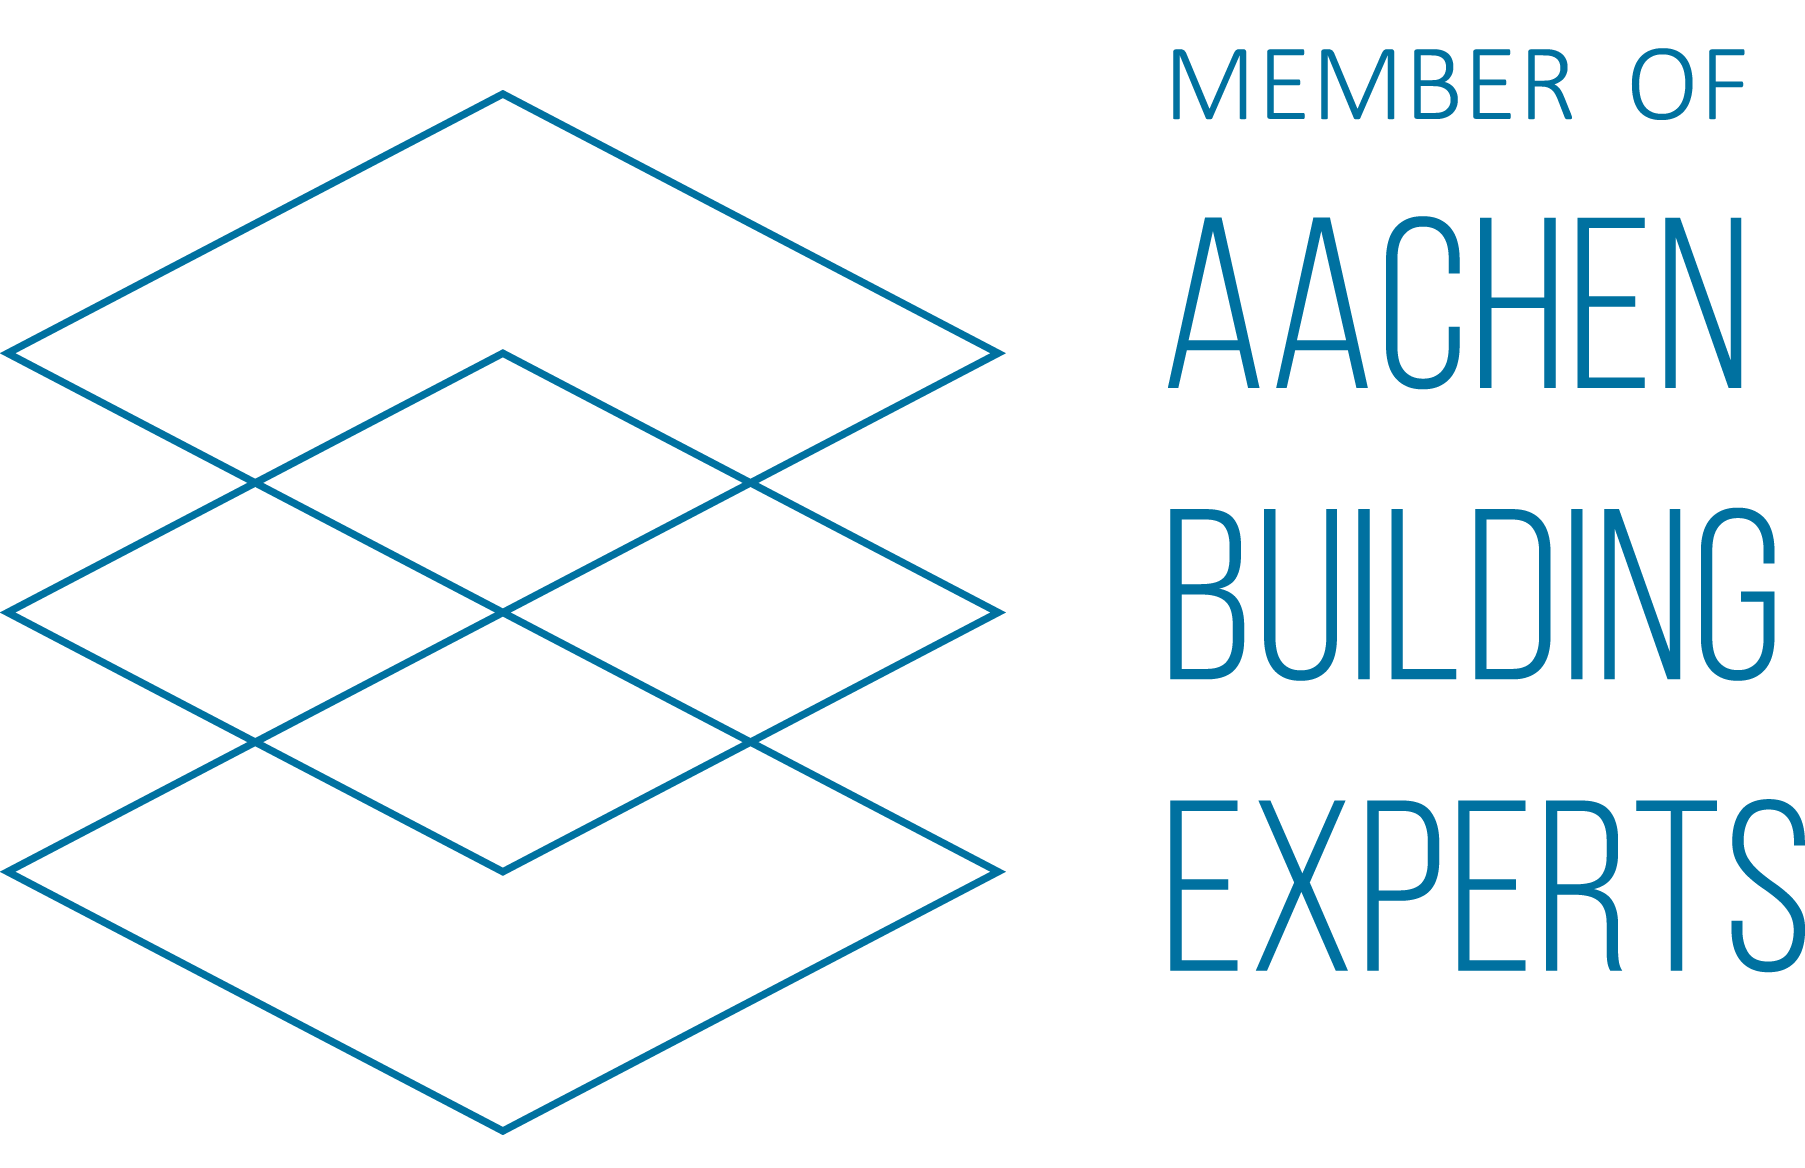 Member of Aachen Building Experts